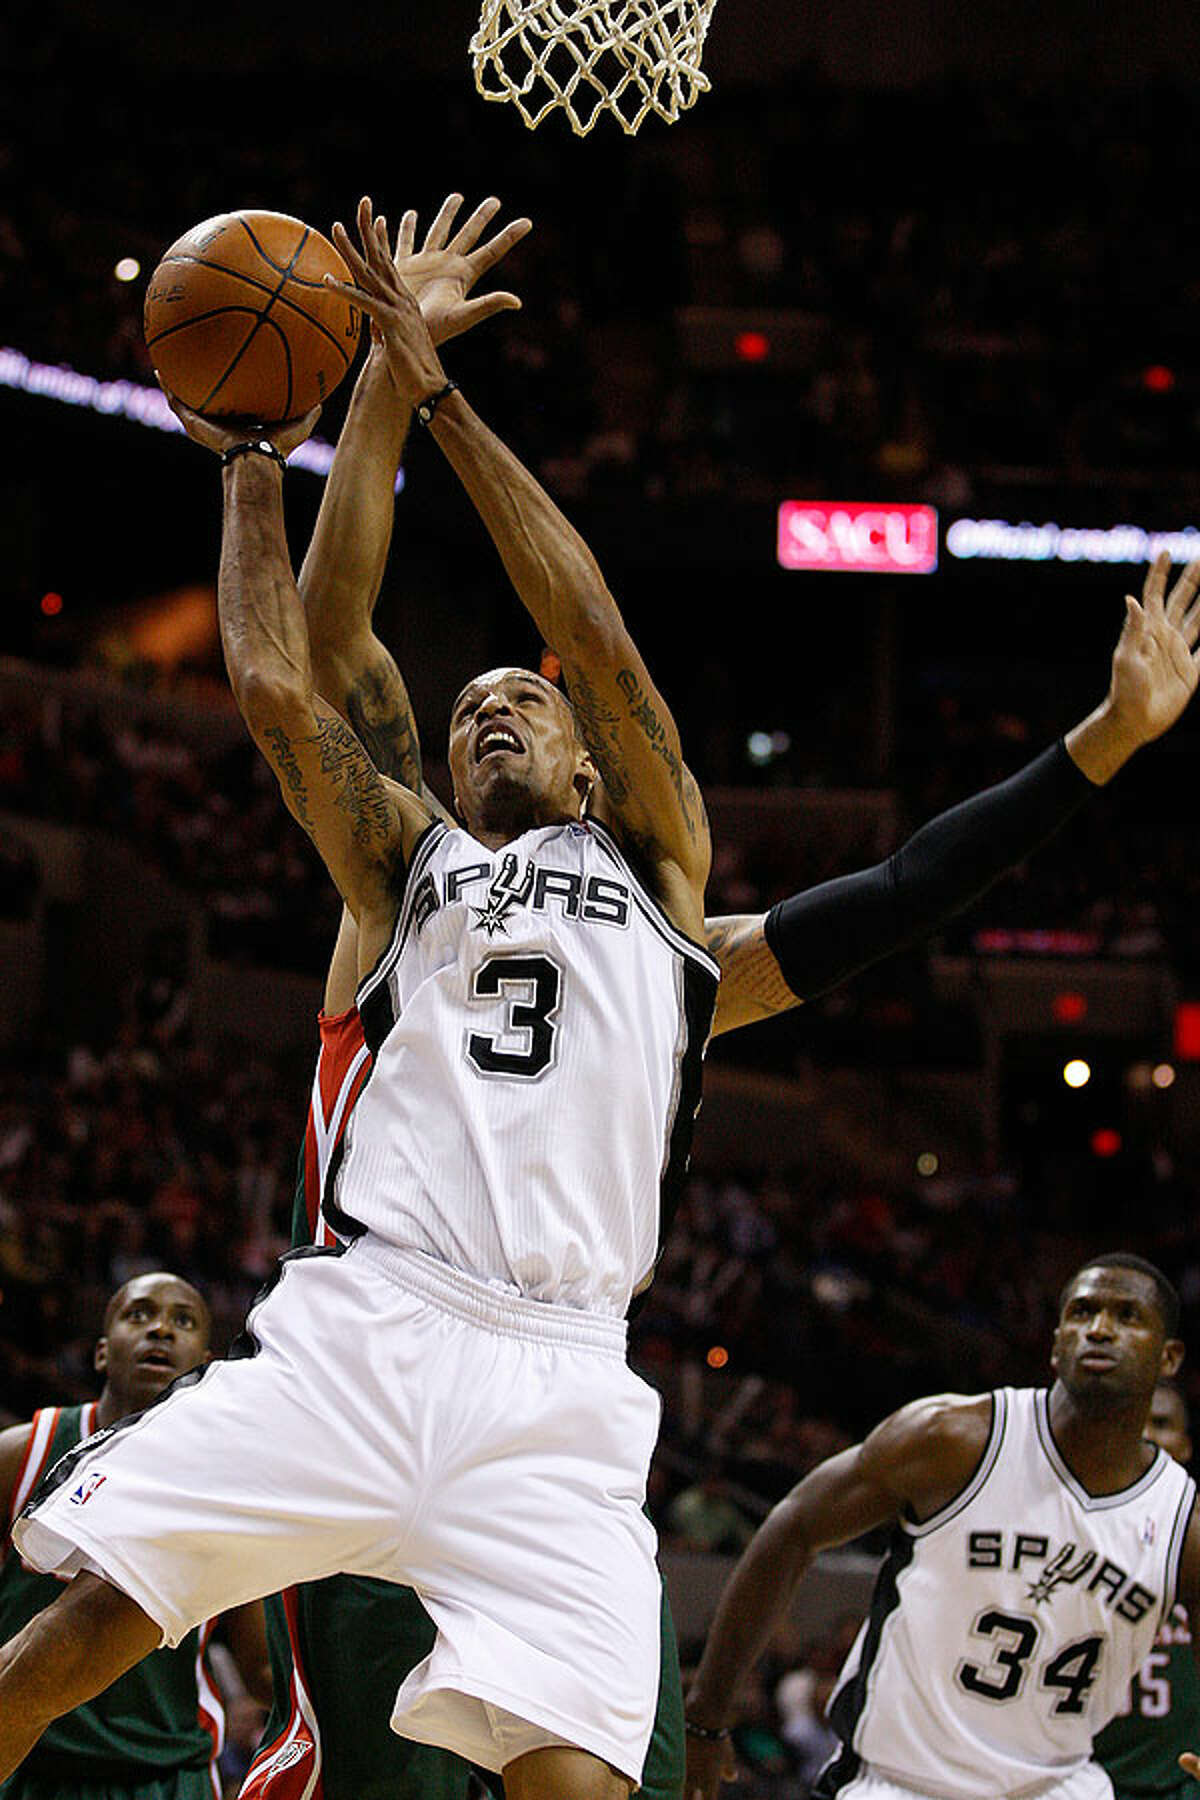 The Spurs' George Hill goes for two under pressure from the Bucks' Drew Gooden during the first half at the AT&T Center, Wednesday, Dec. 15, 2010.